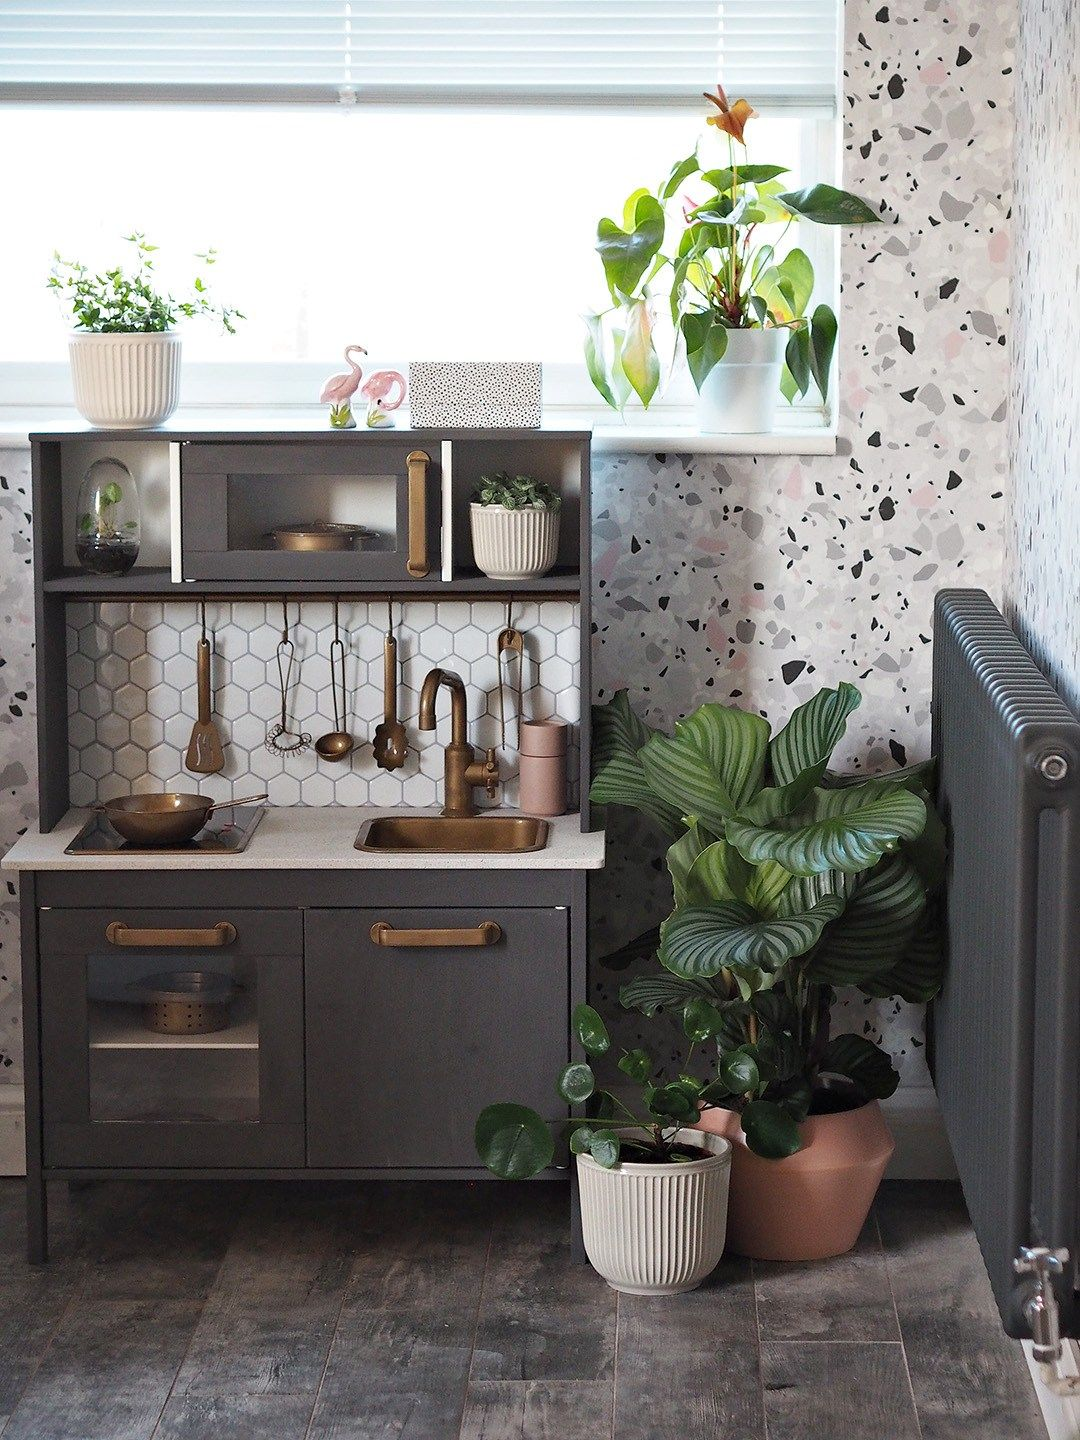 IKEA DUKTIG Play Kitchen with Aldi Upcycling Range in 2020